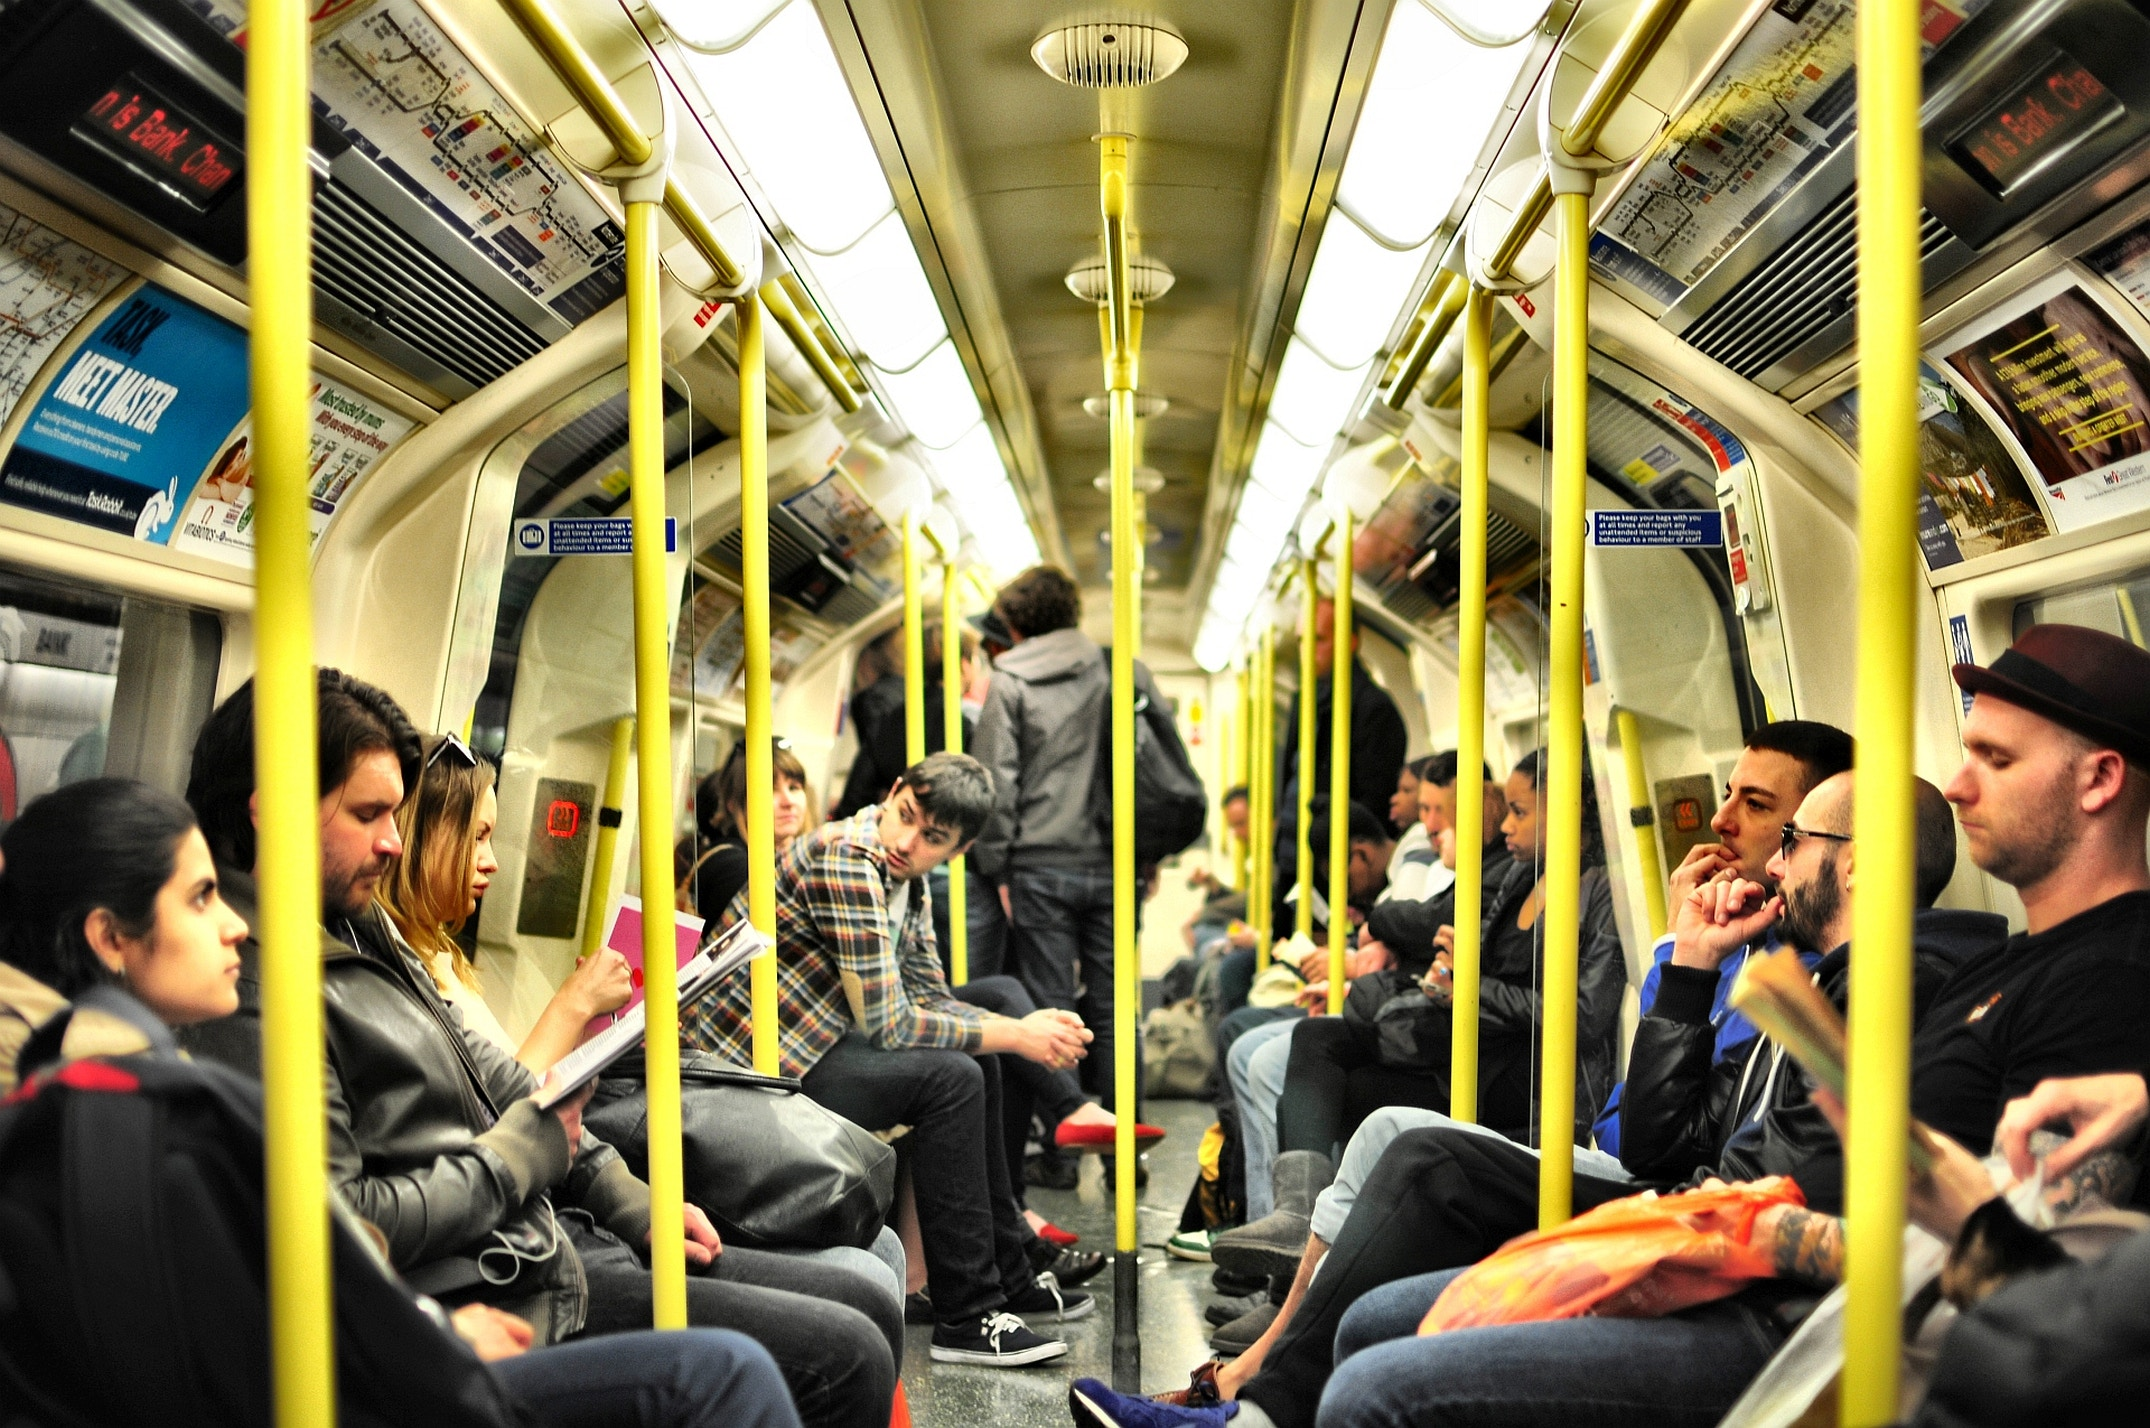 commuters on a London tube